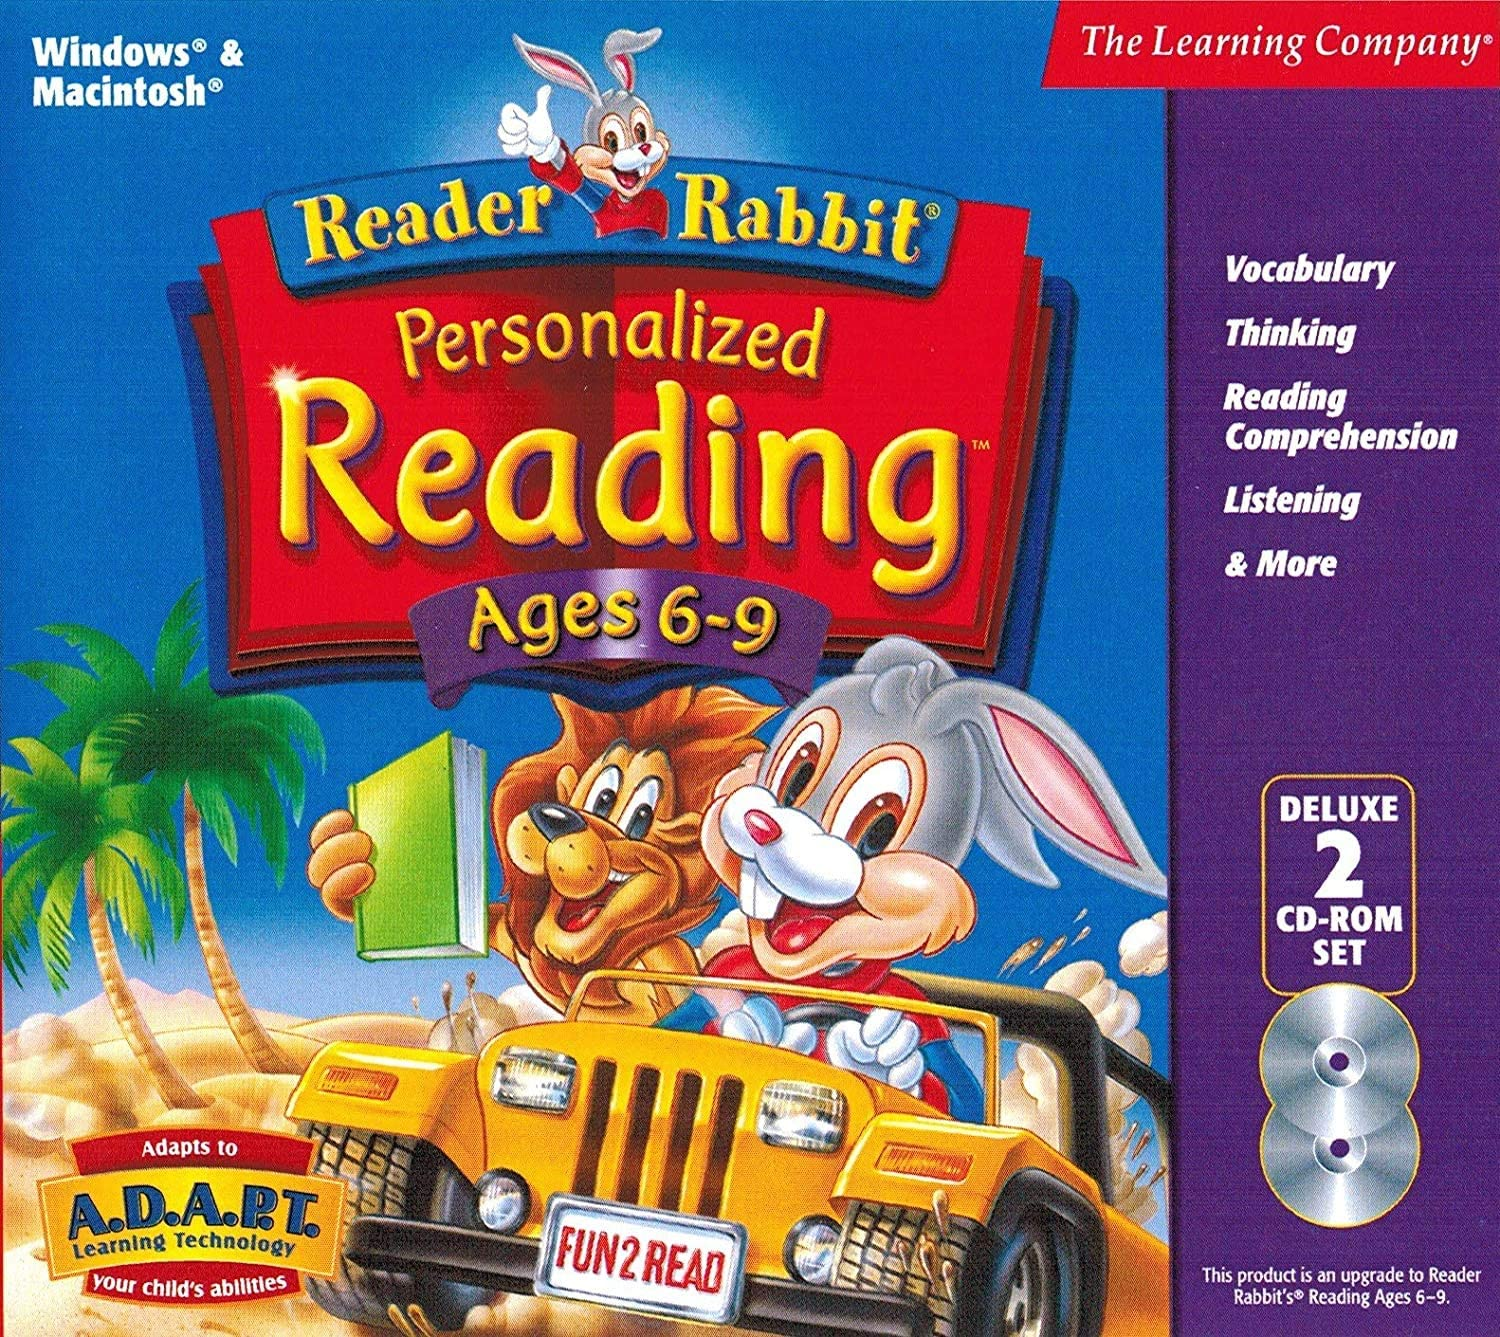 B0002JZP90 Learning Company Reader Rabbit Personalized Reading Ages 6-9 Deluxe 81oj0ohdMkL